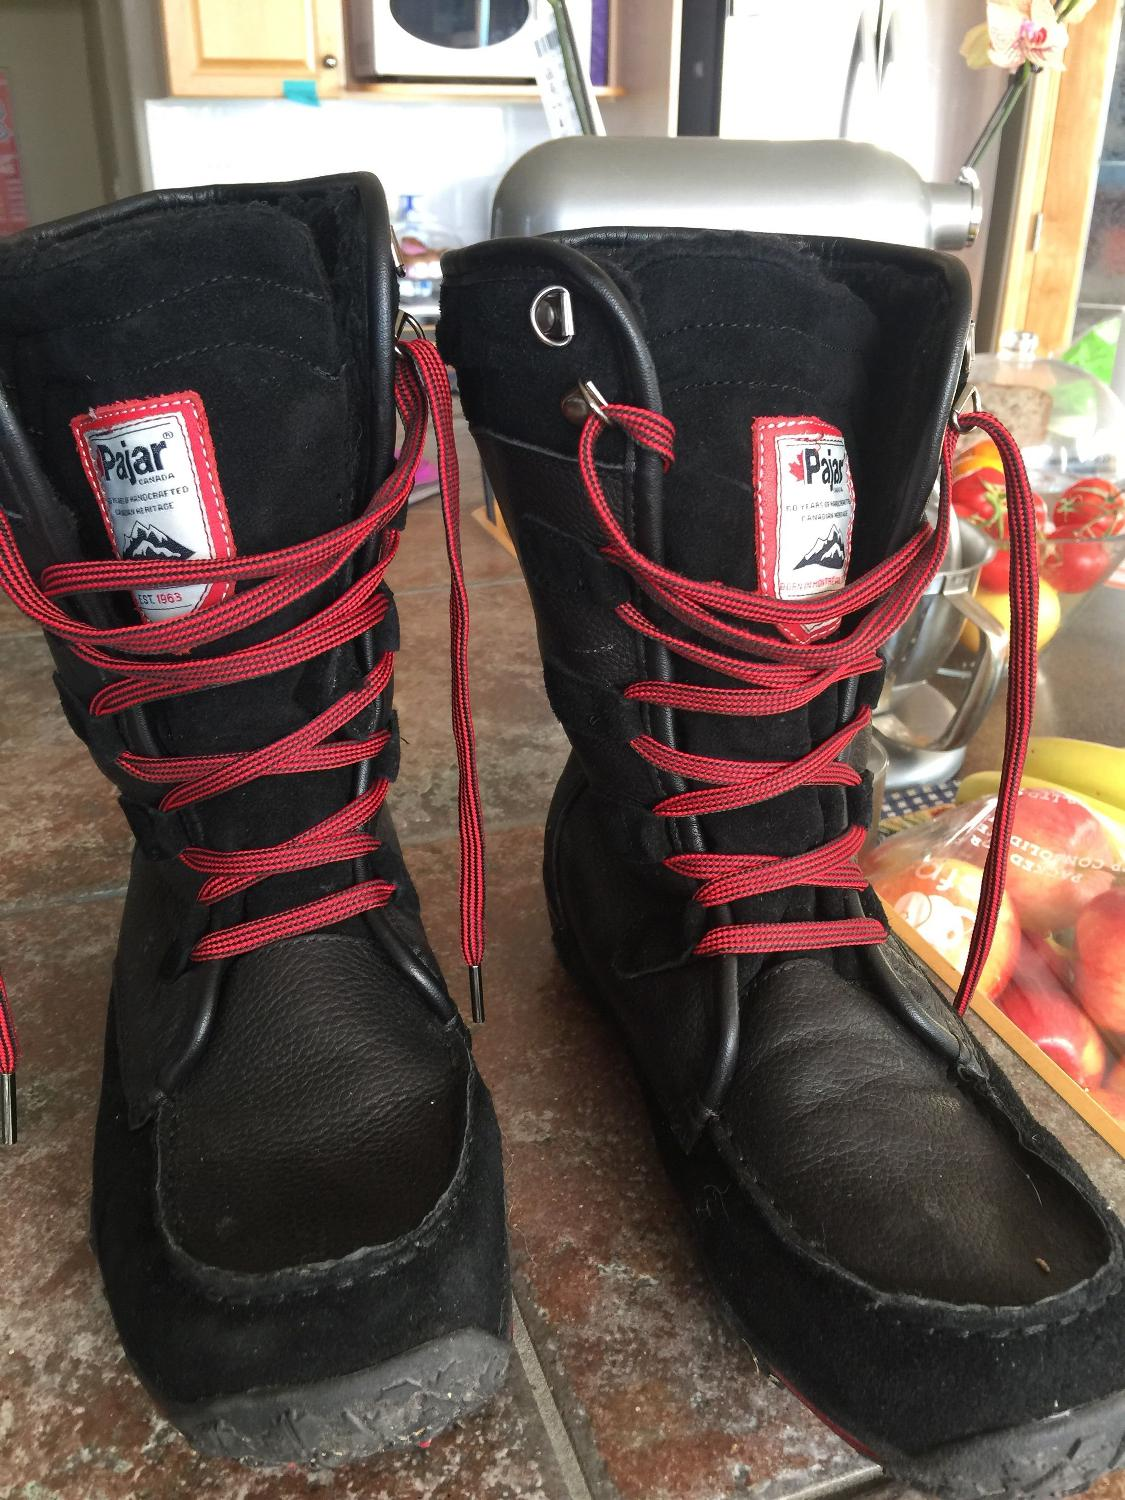 Find more Pajar Winter Boots for sale at up to 90% off